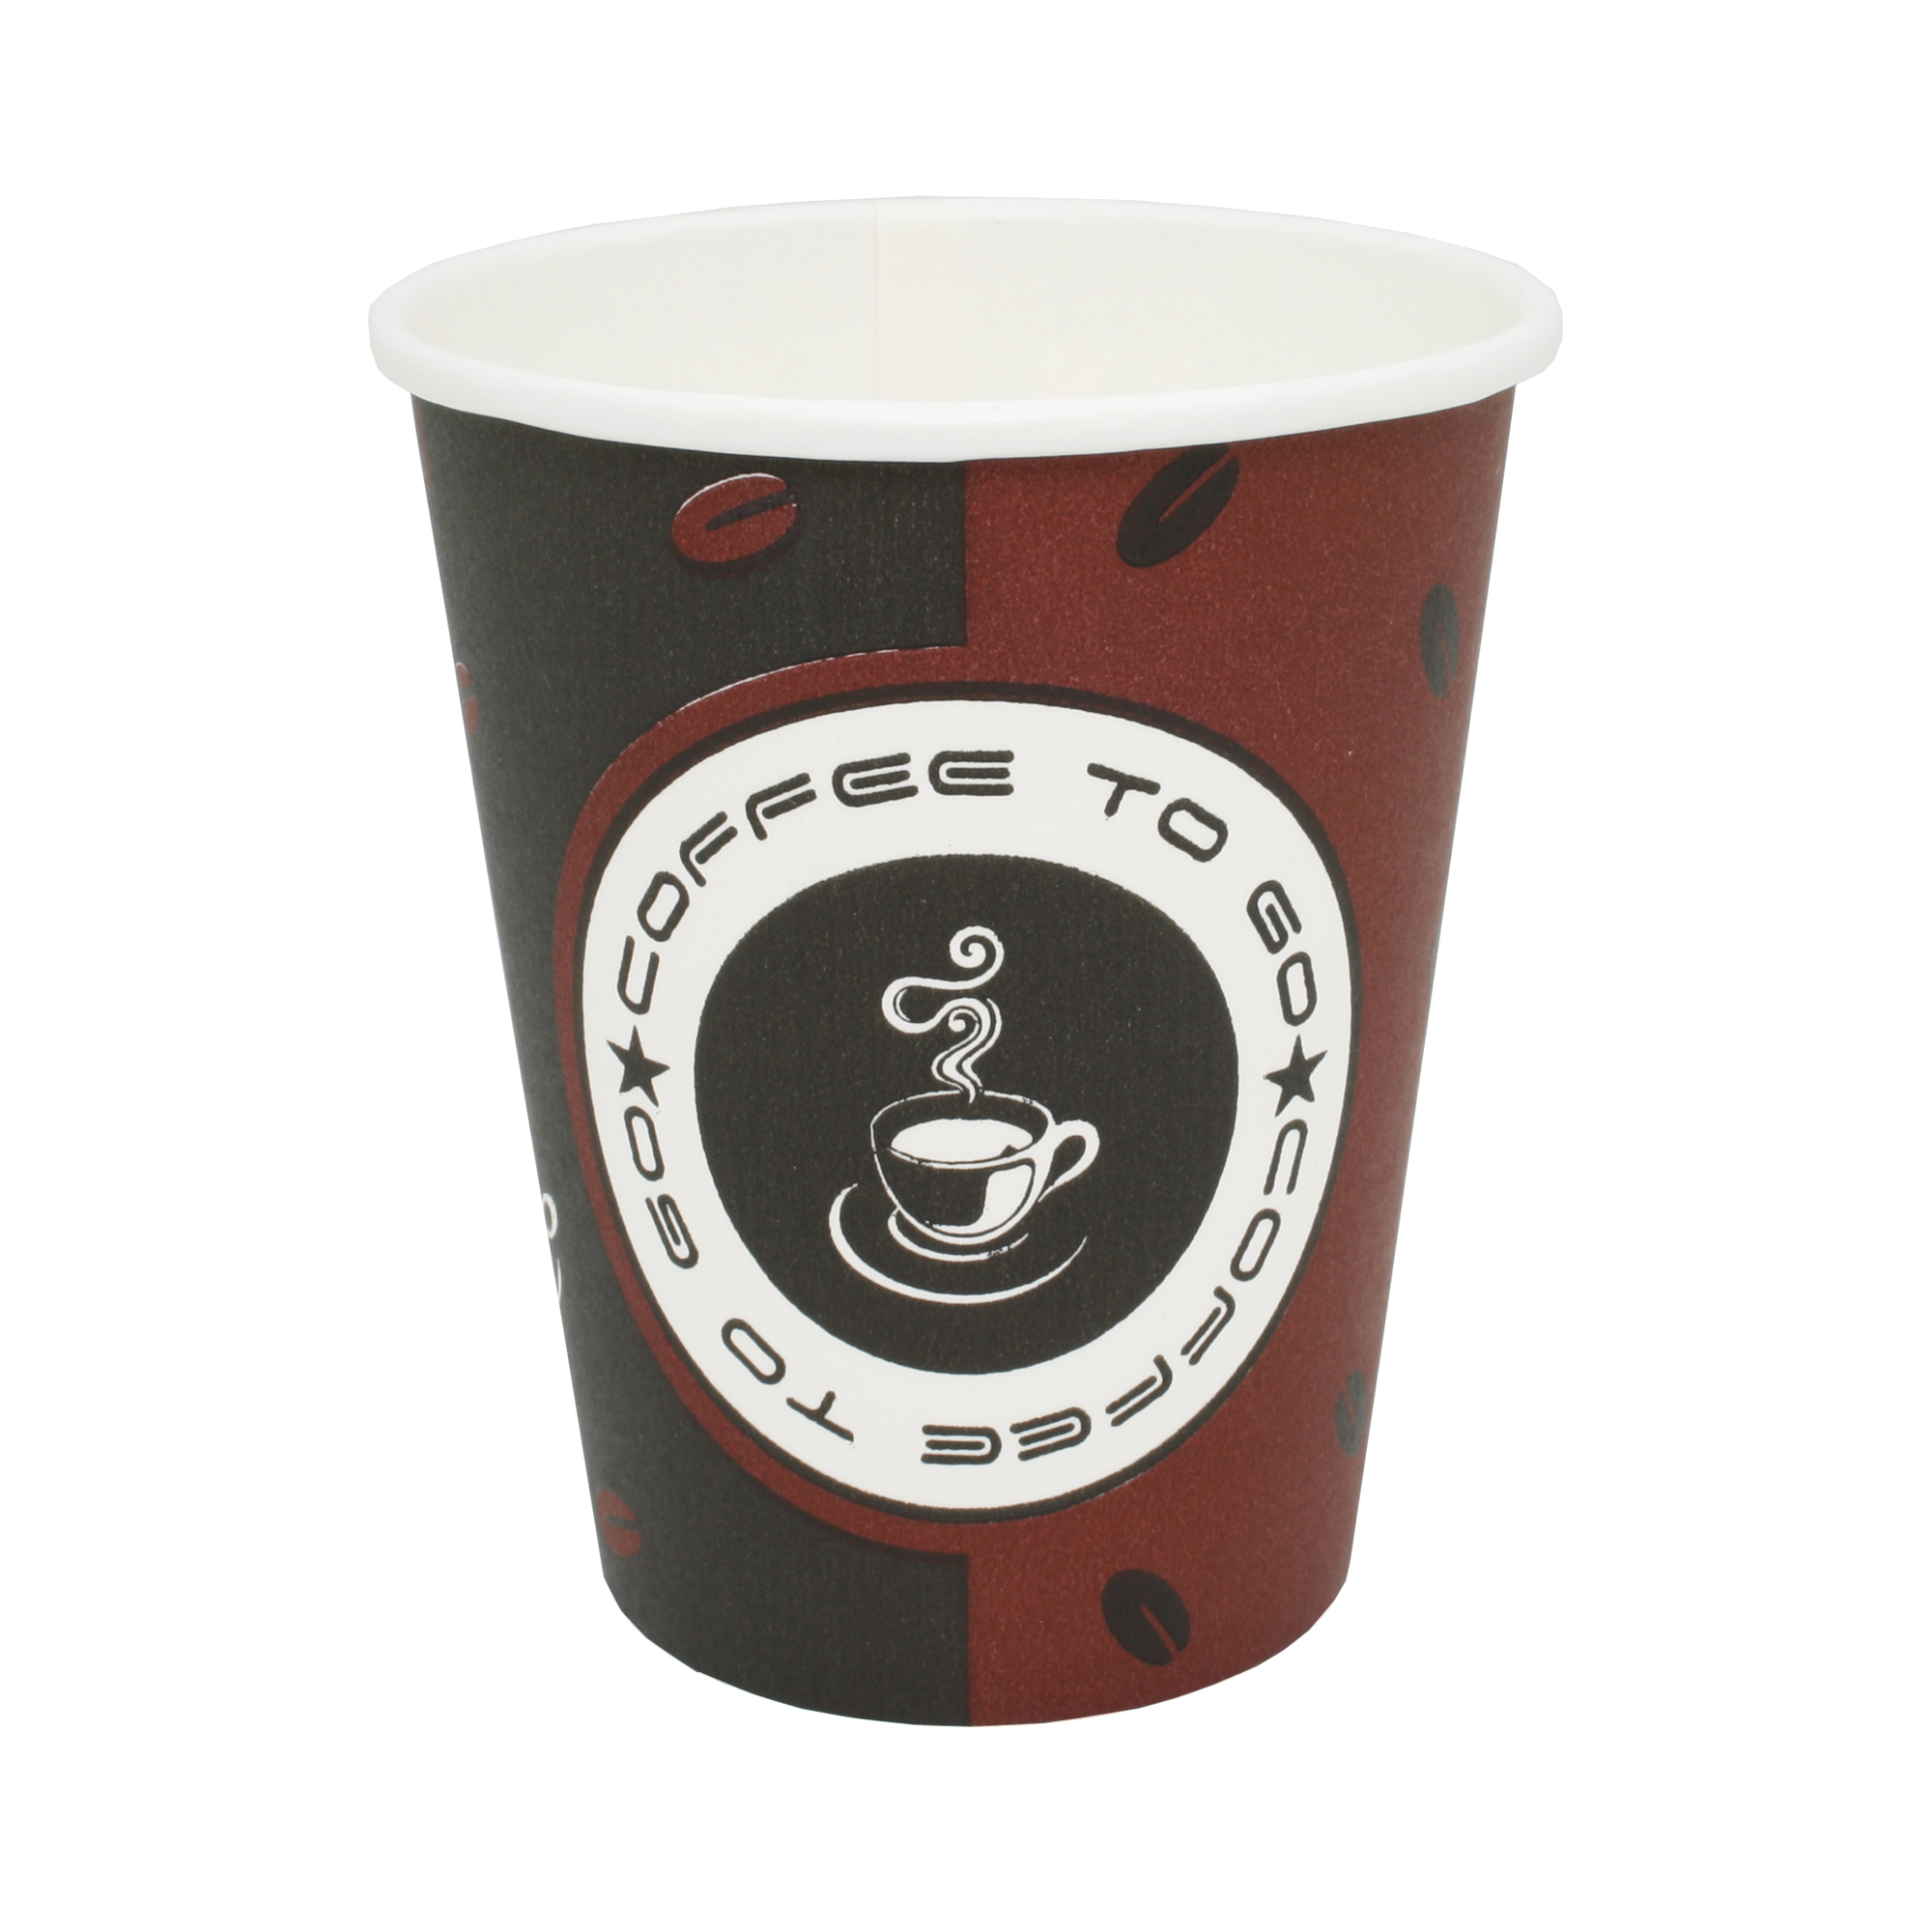 Hartpapier pappbecher kaffeebecher coffee to go mit ohne for Coffee to go